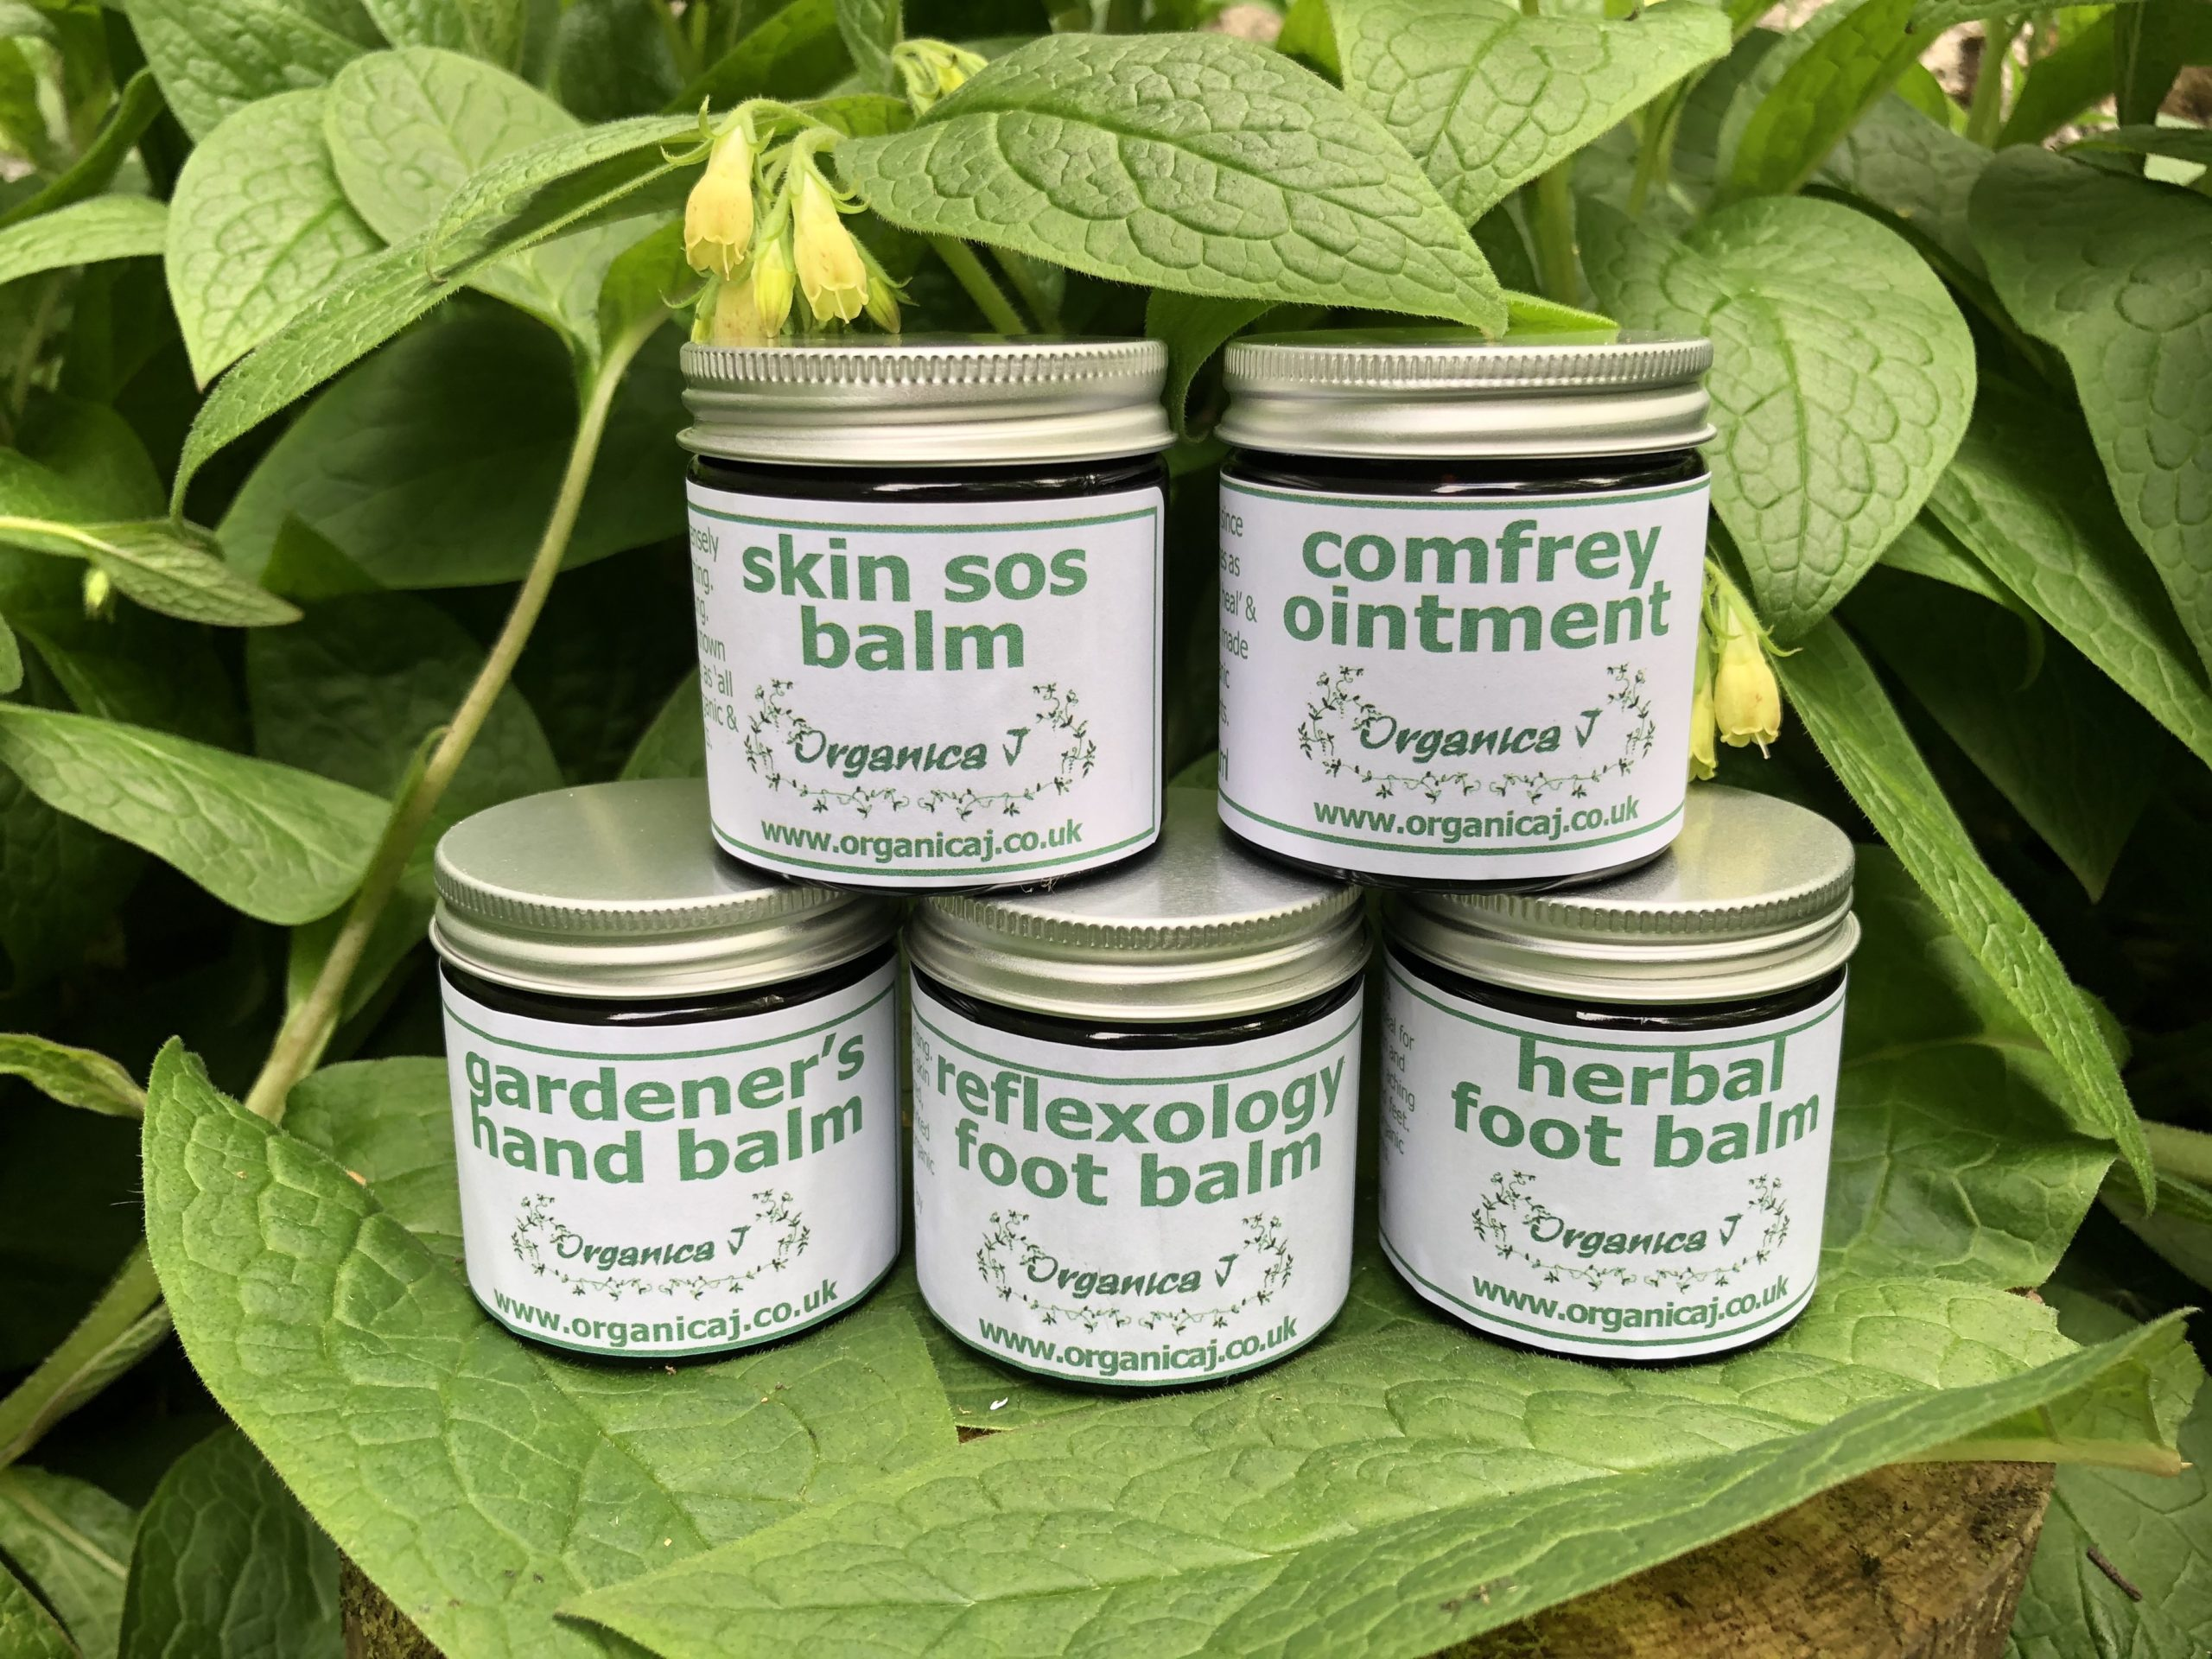 Comfrey Ointment and Organic Aromatherapy products